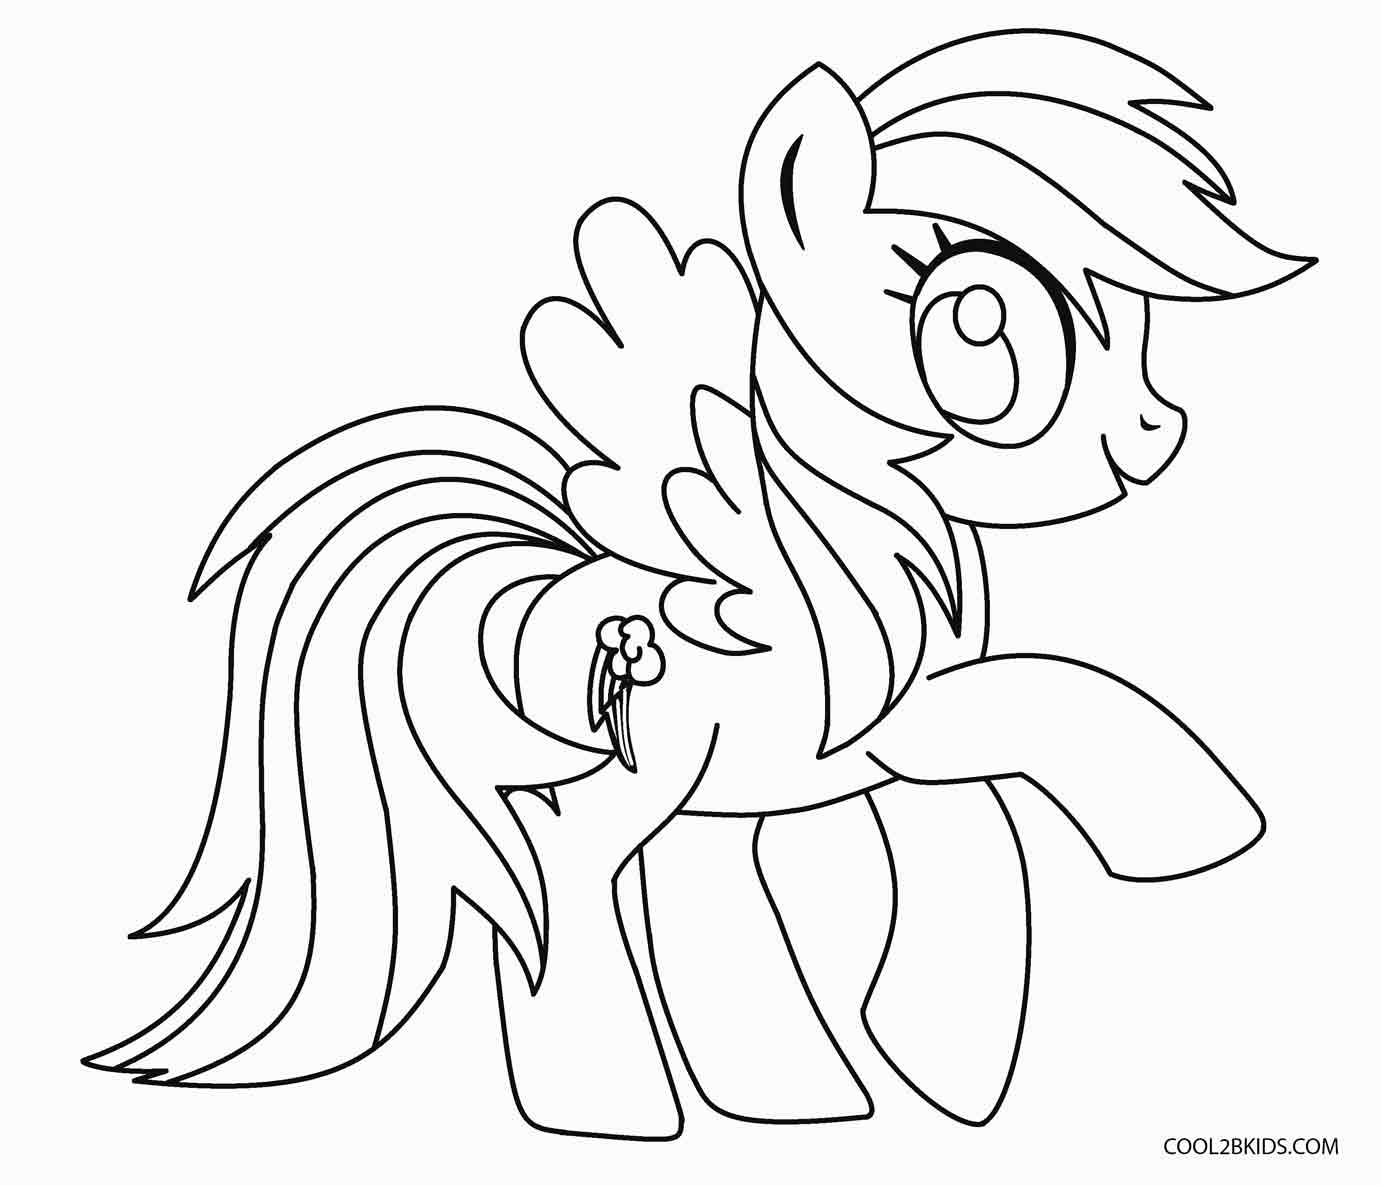 mlp printouts coloring pages my little pony coloring pages free and printouts mlp